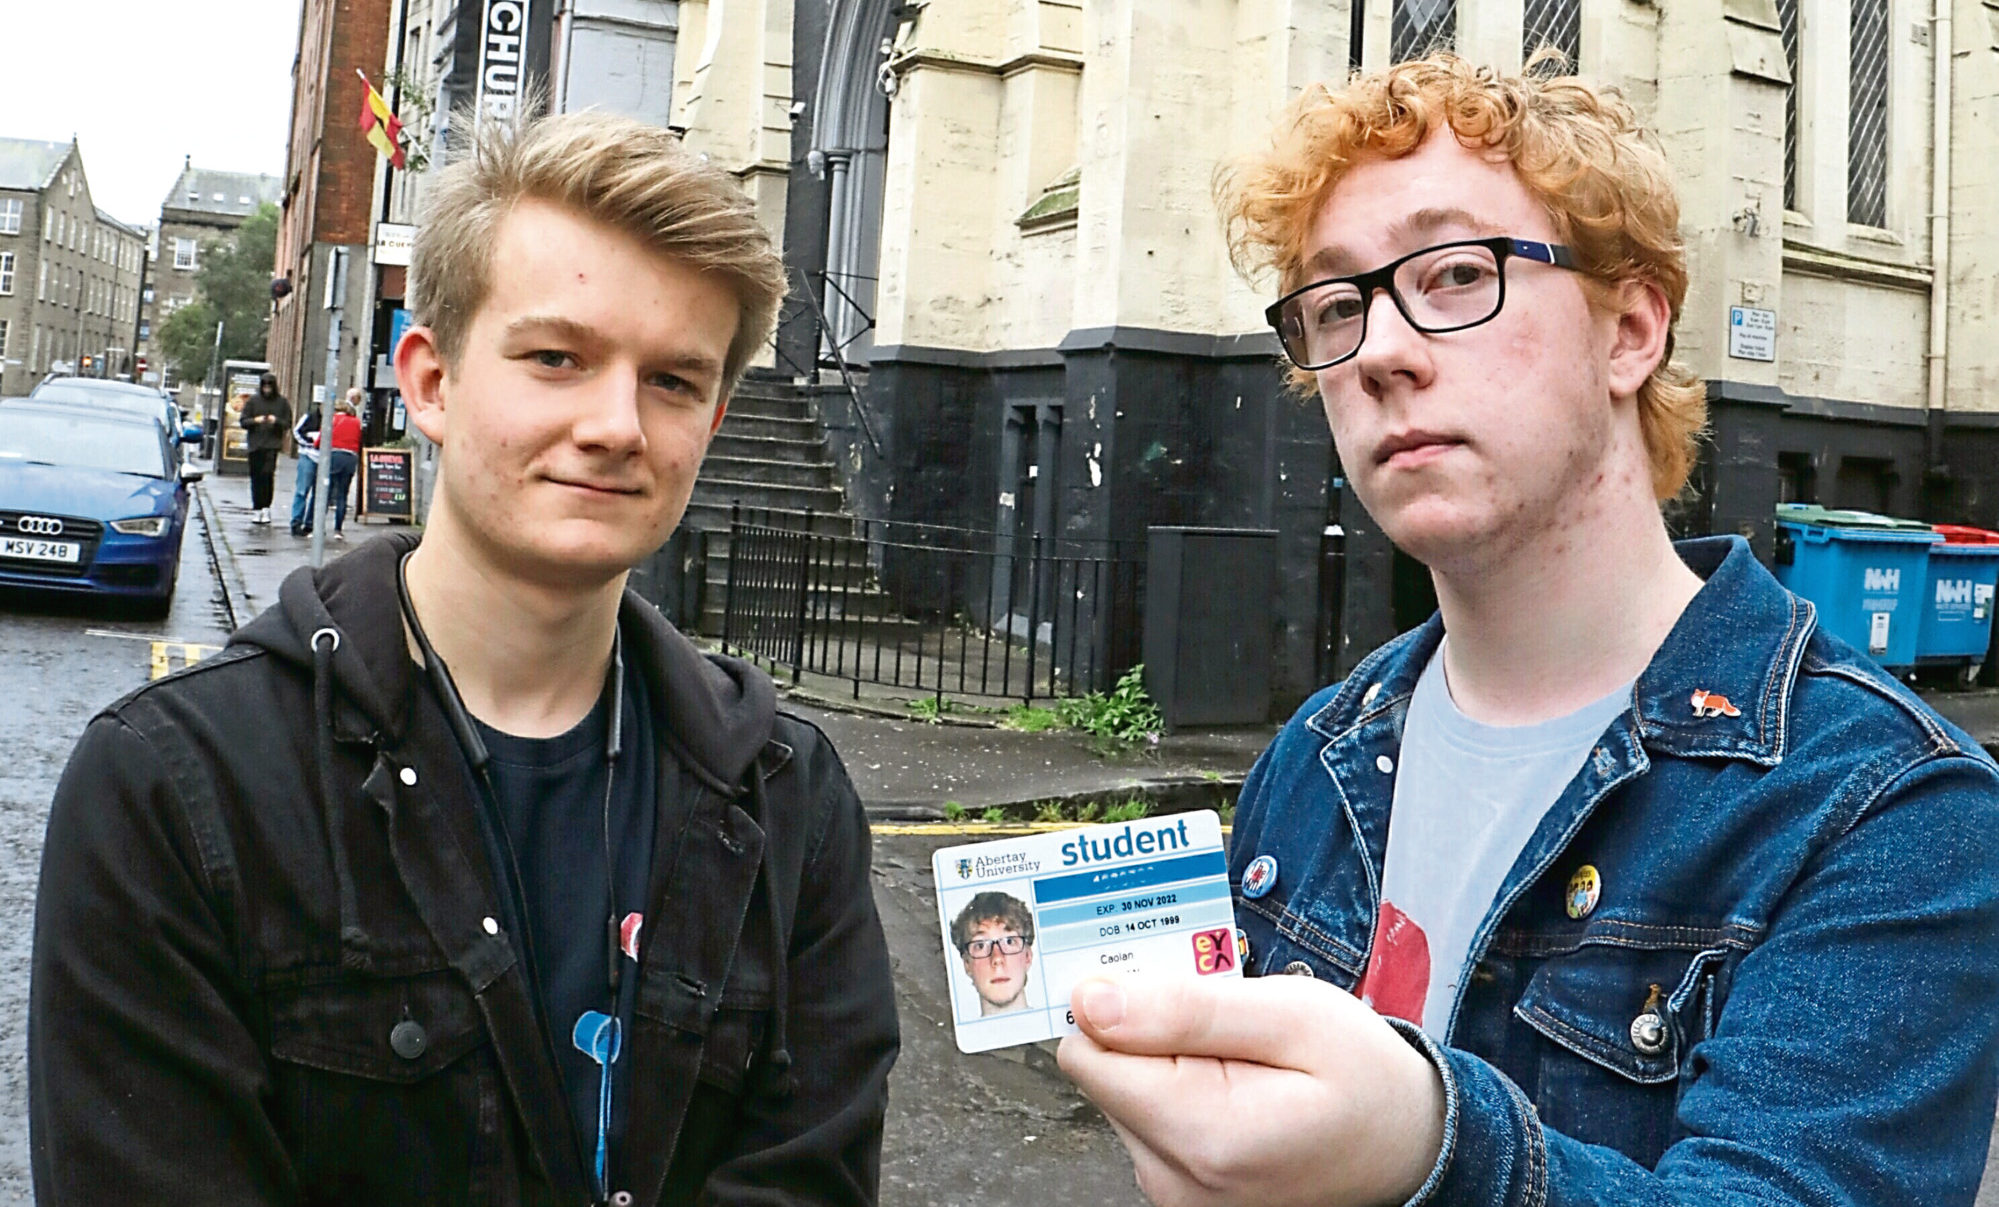 Josh Smith and Caolan Keenan were refused entry despite having valid Abertay University cards.